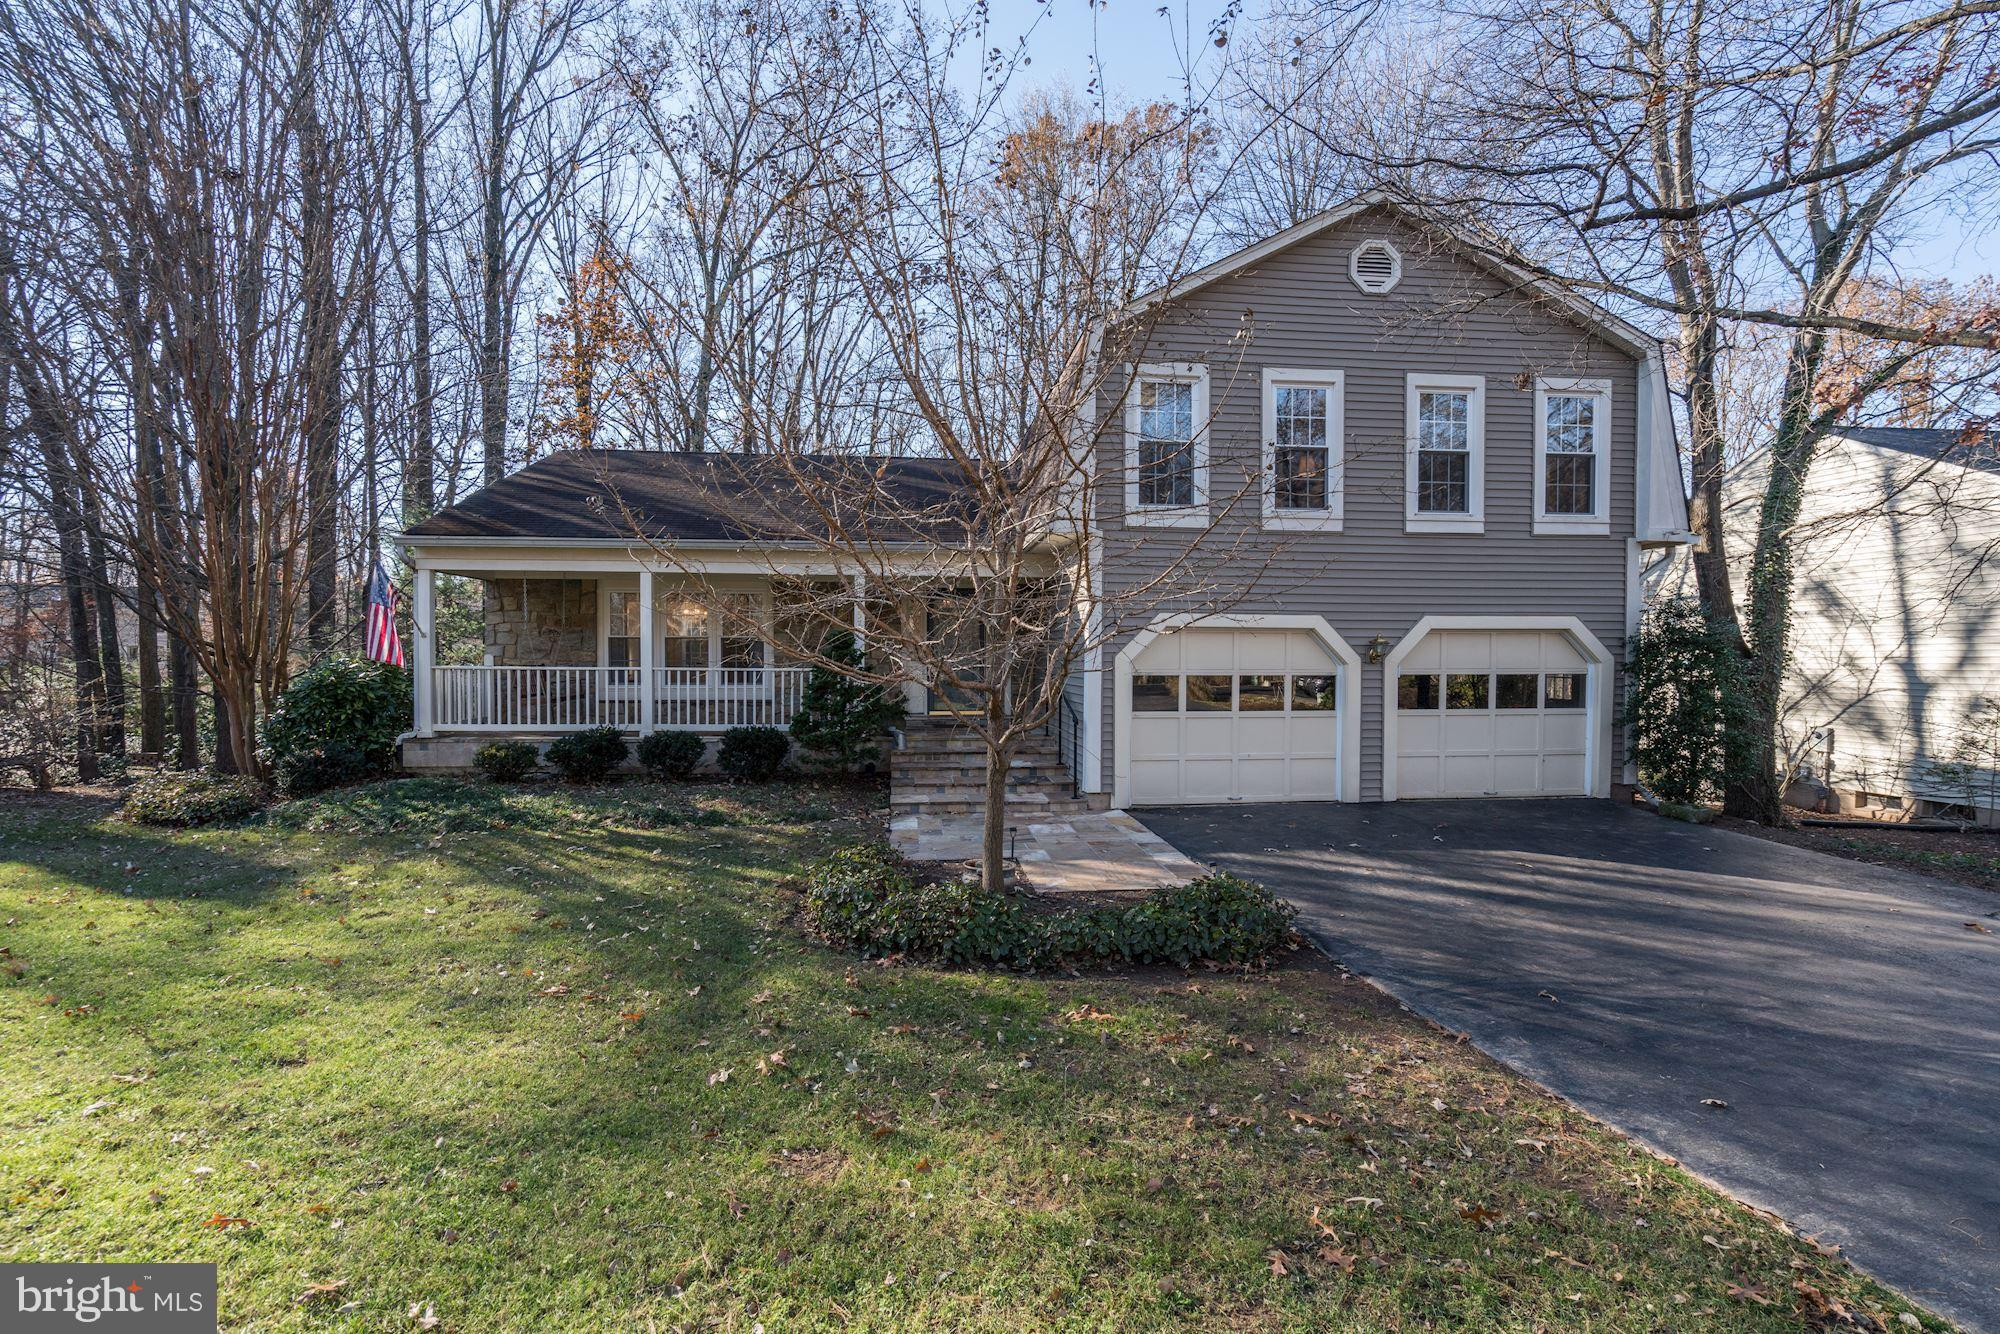 Don't miss out on this chance to live in Shaker Woods. Well maintained home with 4 finished levels.